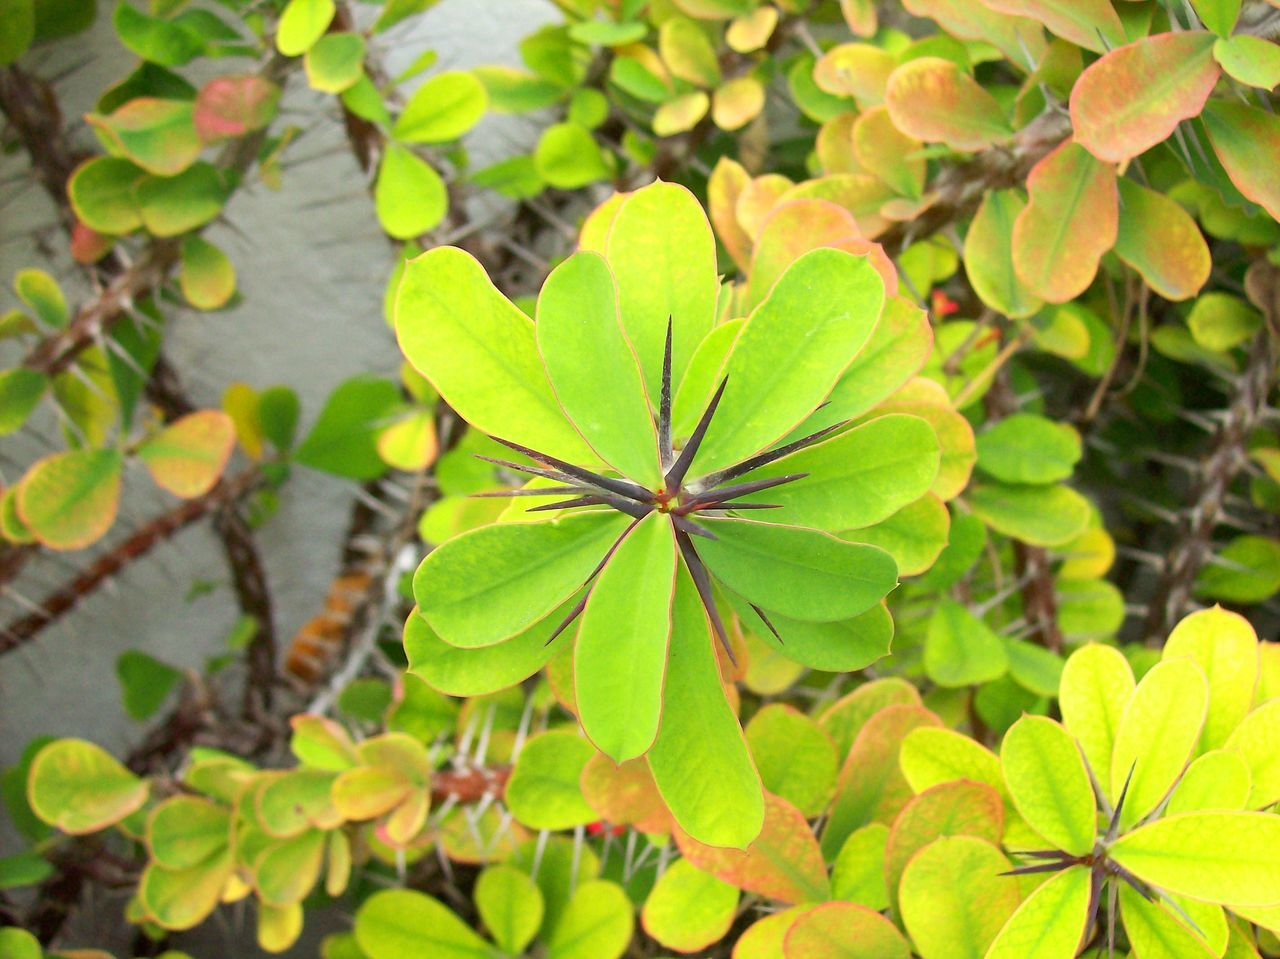 leaf, growth, green color, plant, nature, day, freshness, beauty in nature, outdoors, no people, fragility, close-up, flower, flower head, periwinkle